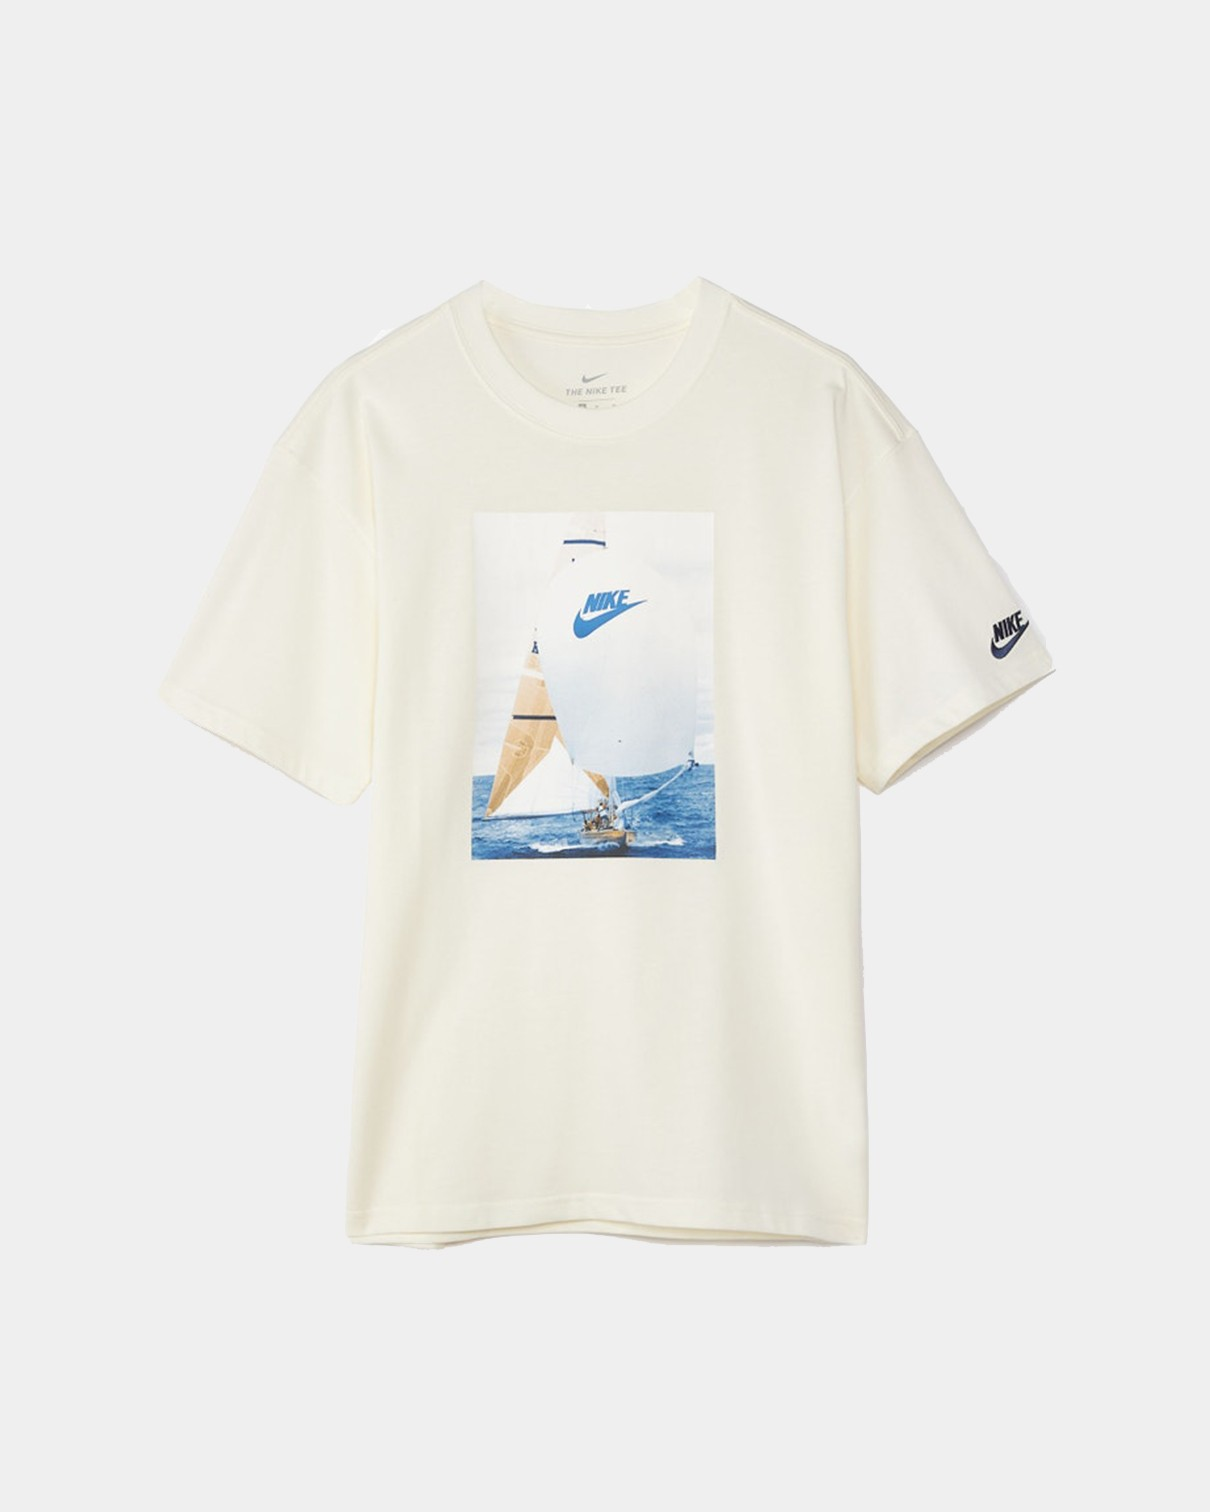 M Nsw Tee Re-issue